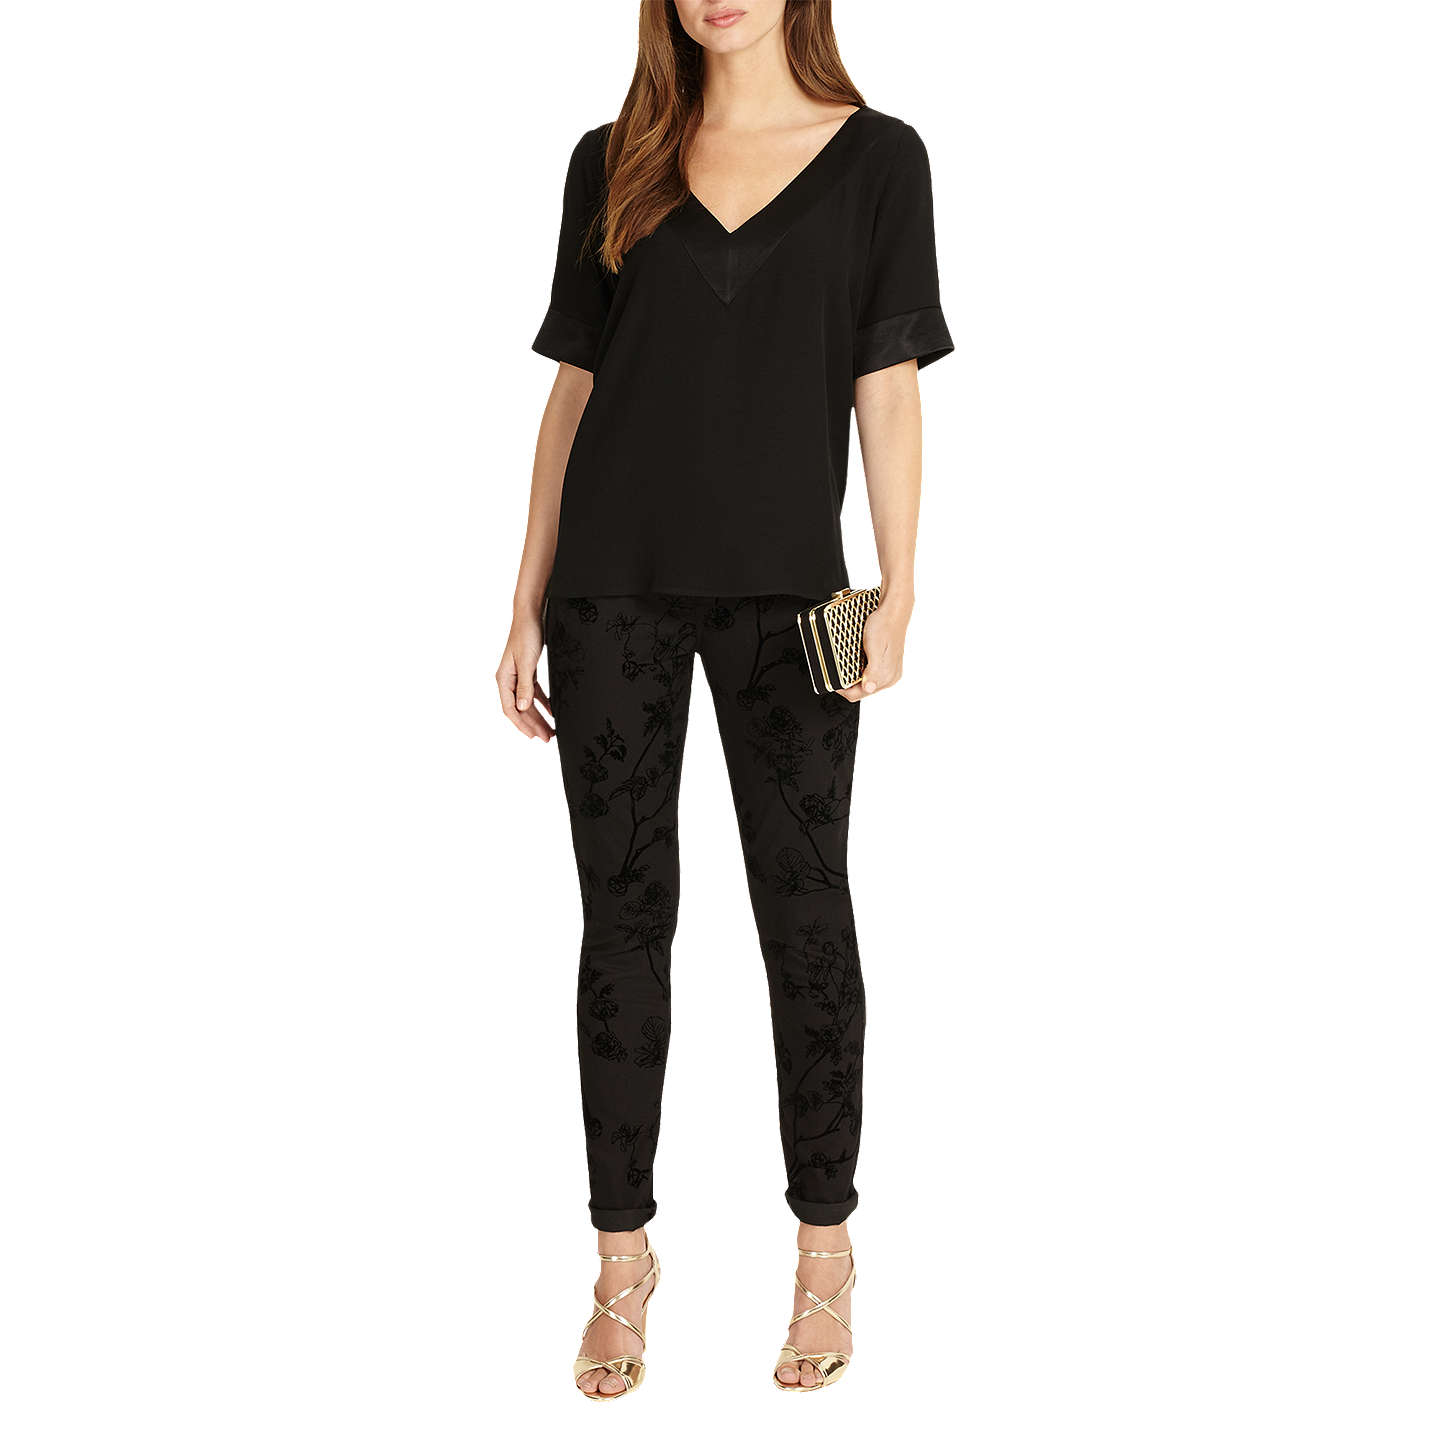 BuyPhase Eight Fiona V-Neck Blouse, Black, 8 Online at johnlewis.com